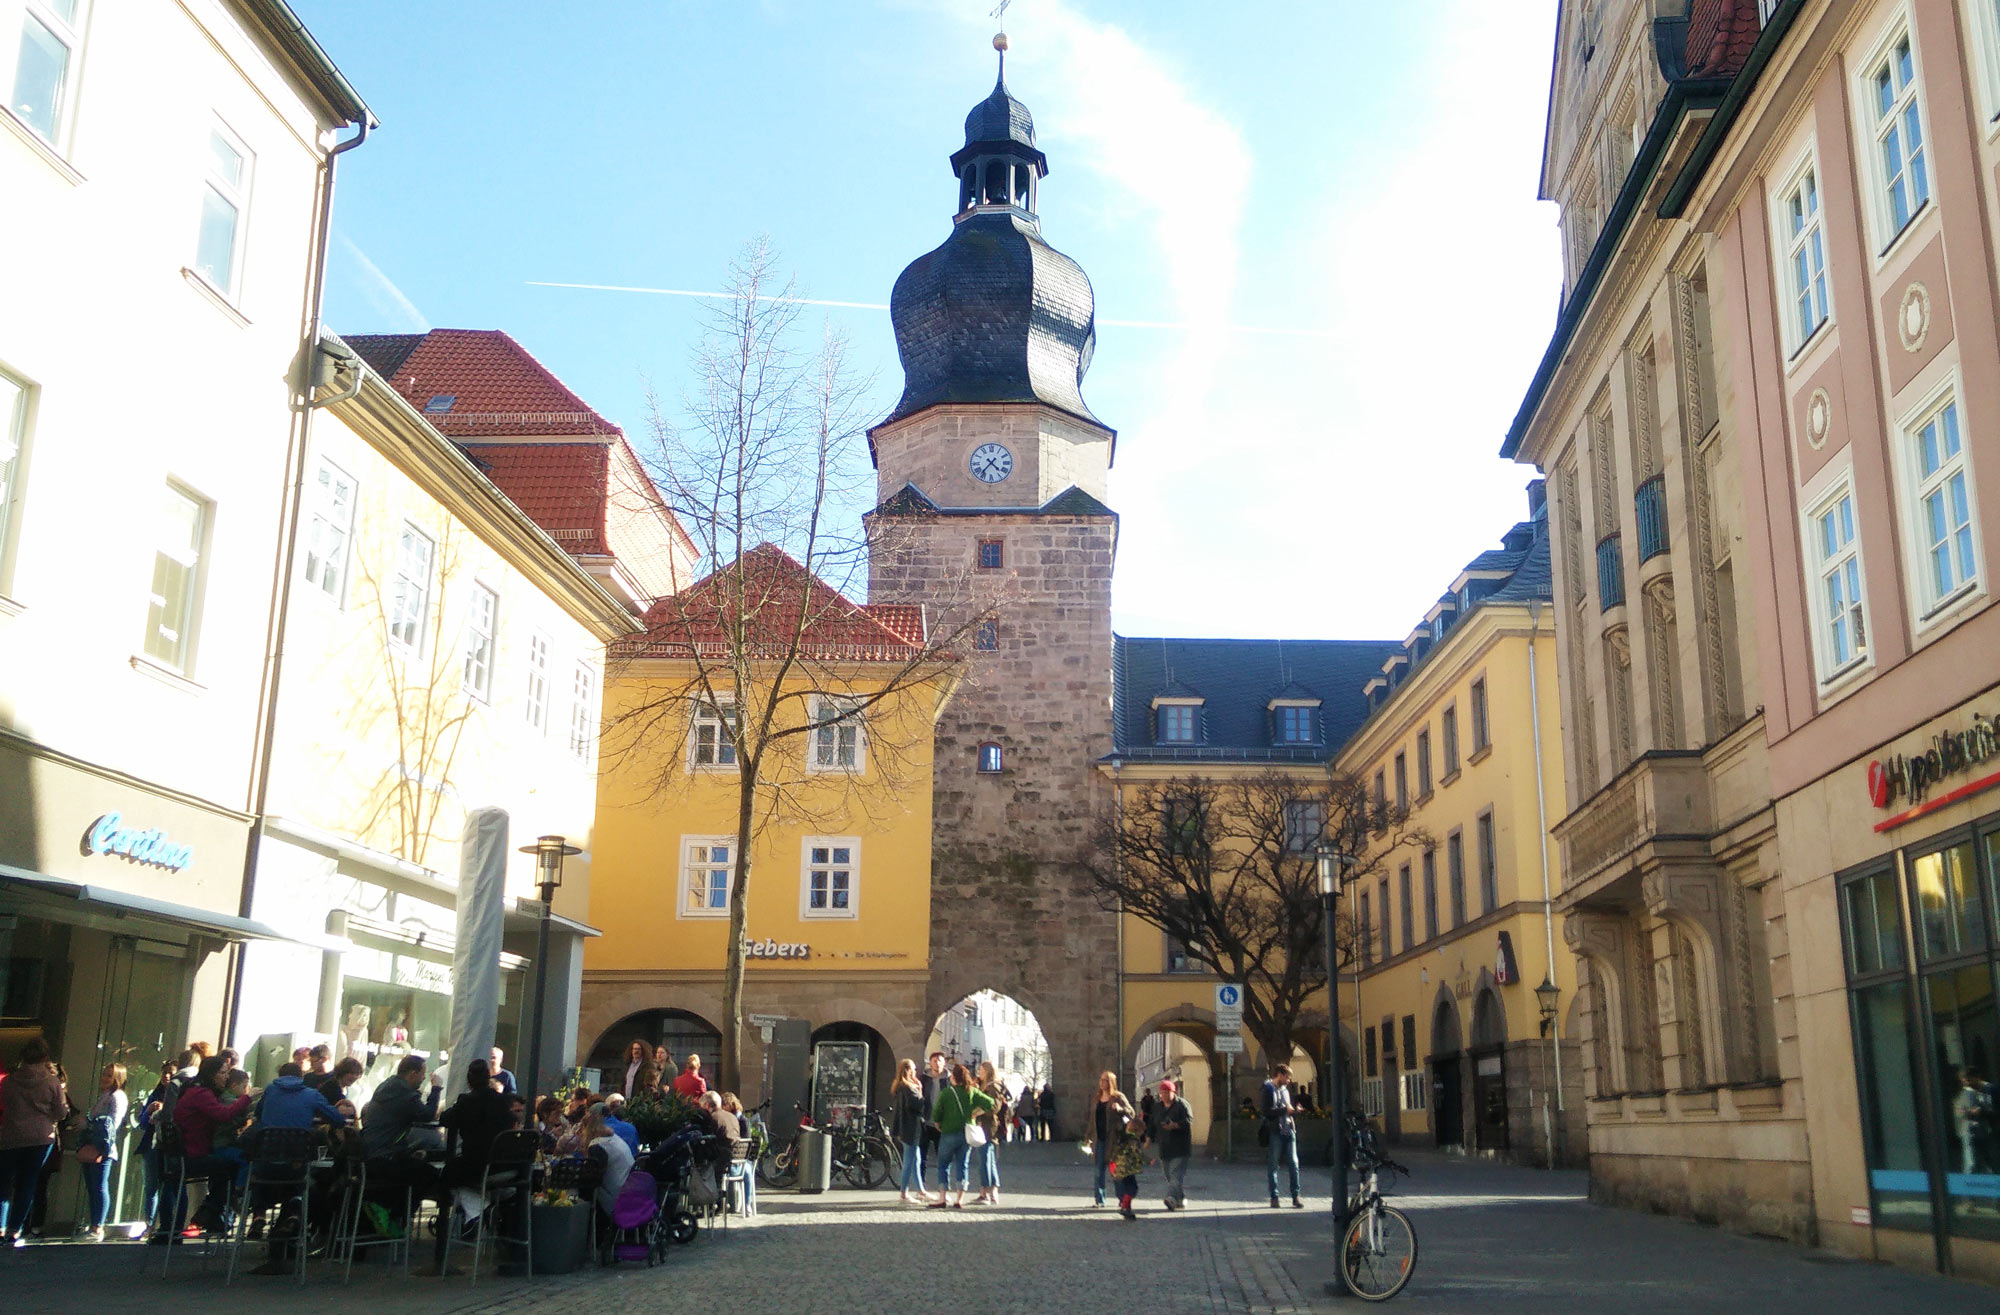 hospital gate Spitaltor in the medieval town wall of Coburg